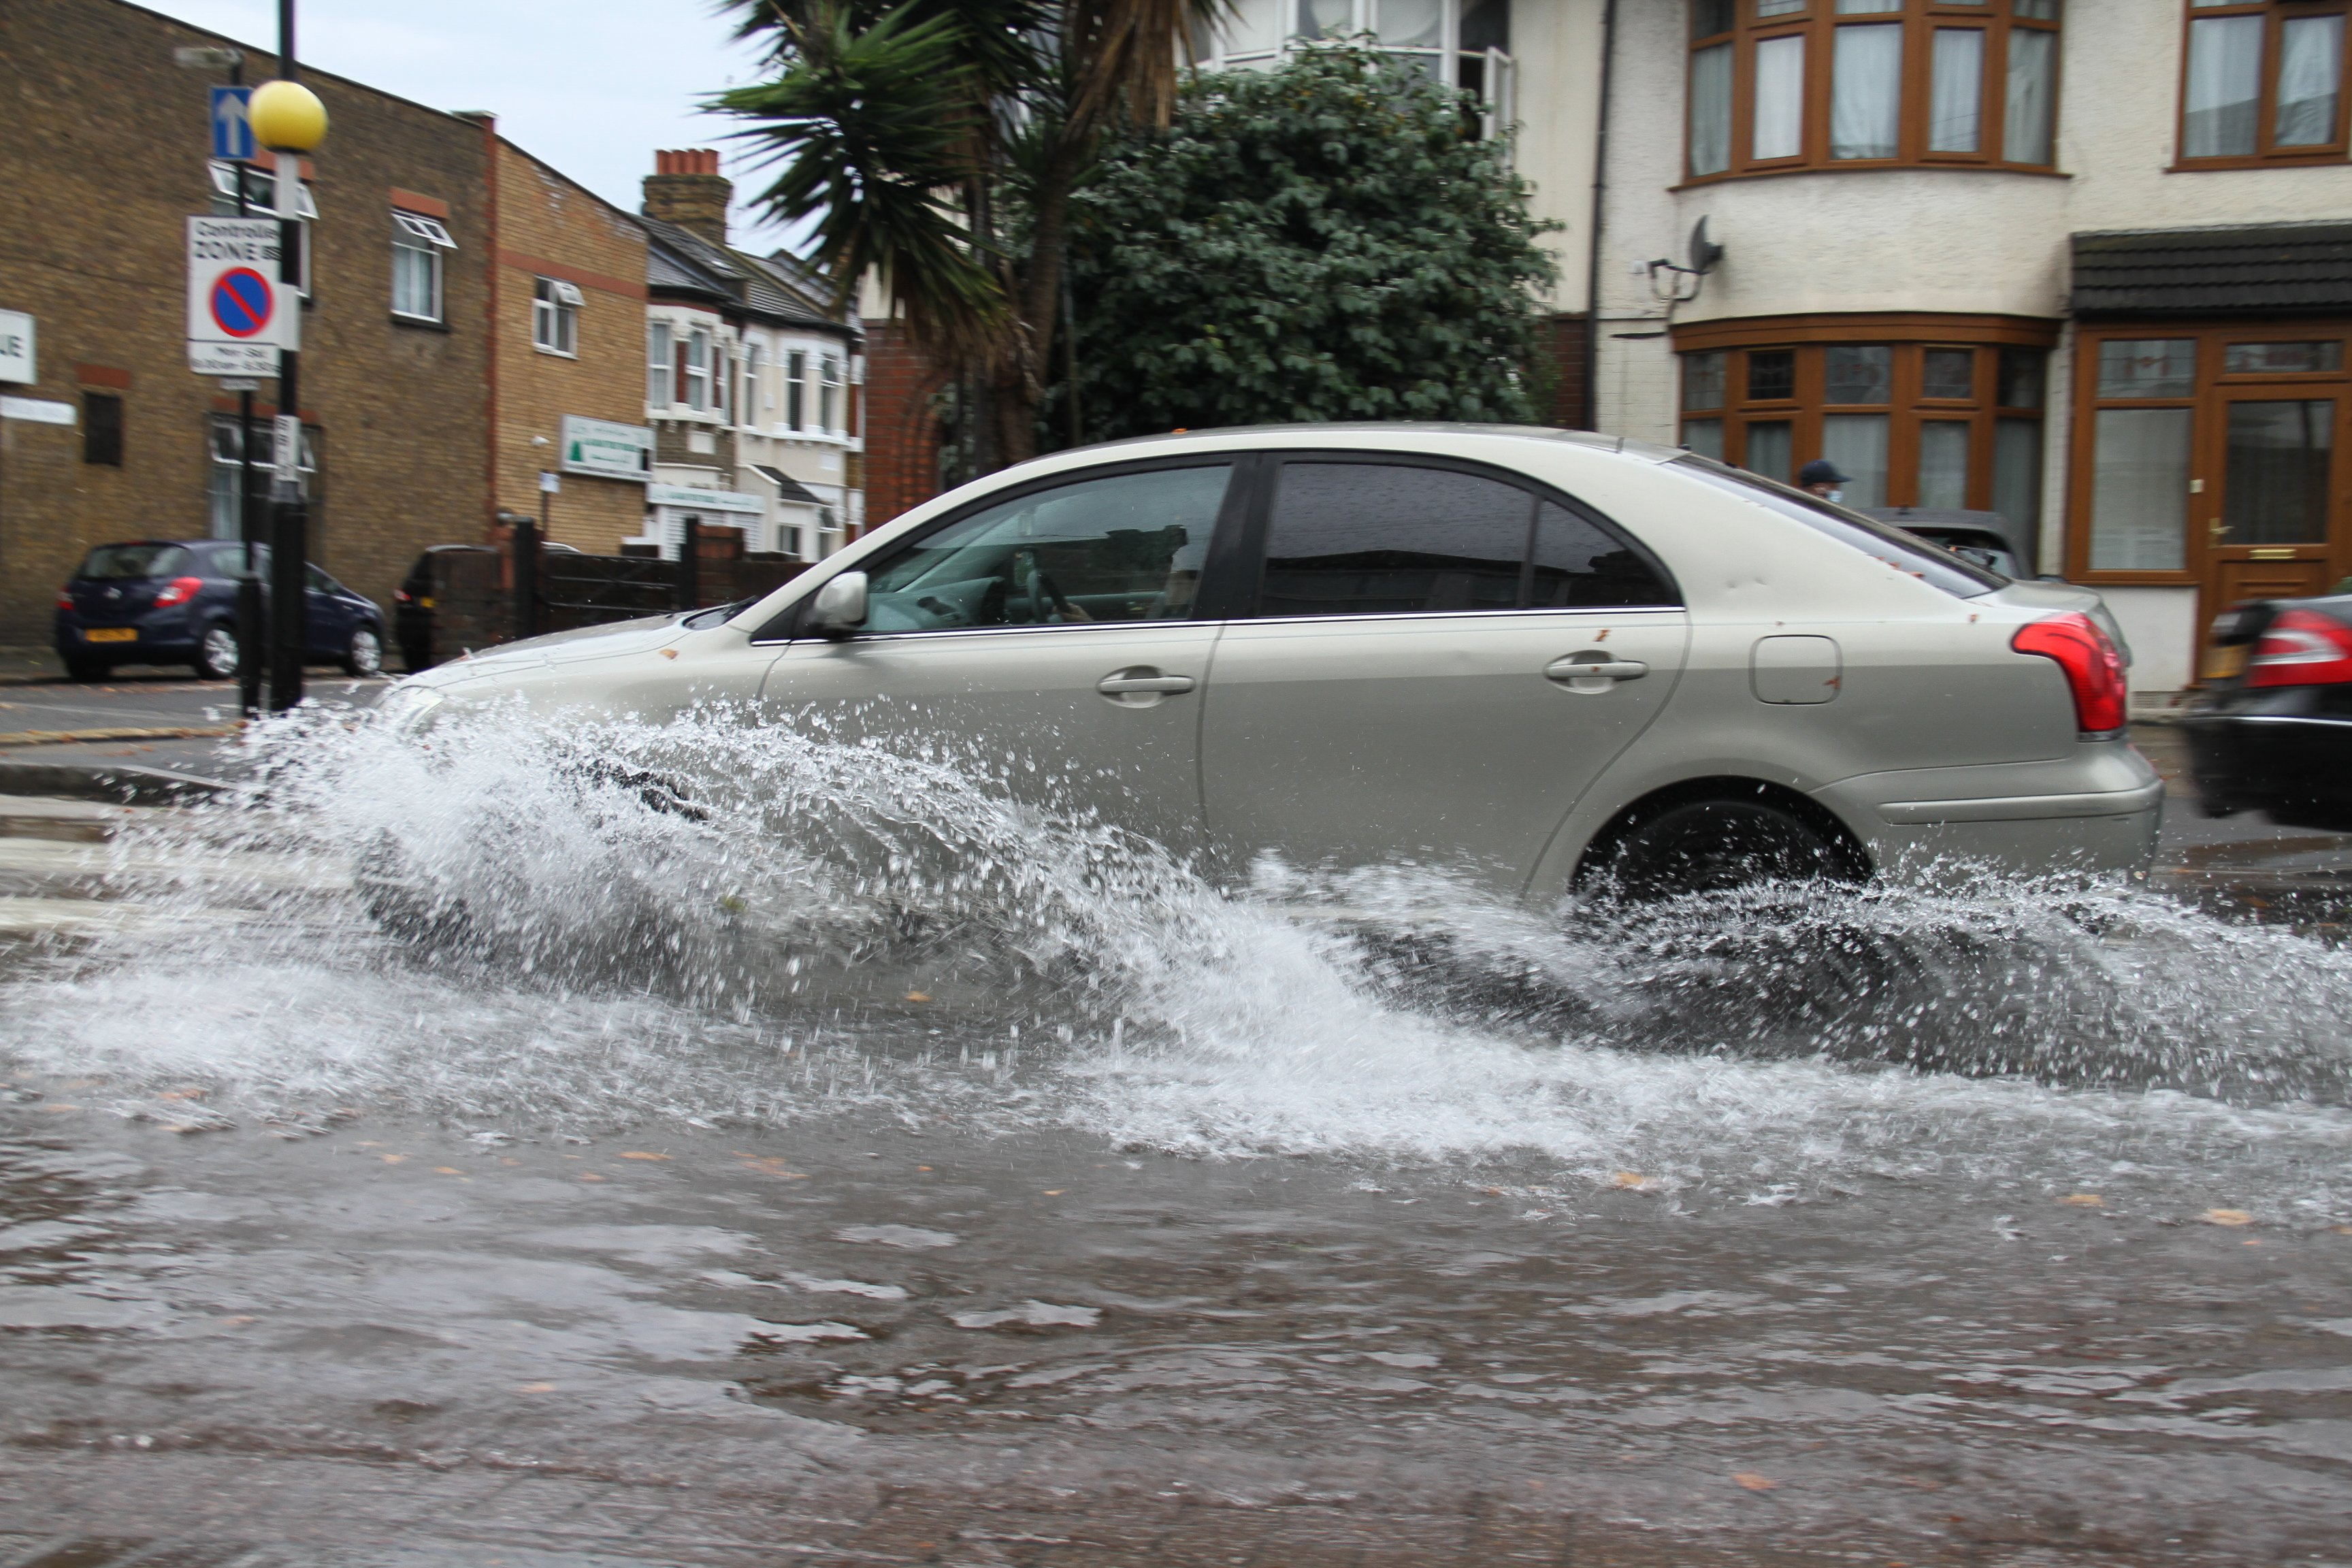 A car drives through flooding on a road in East London